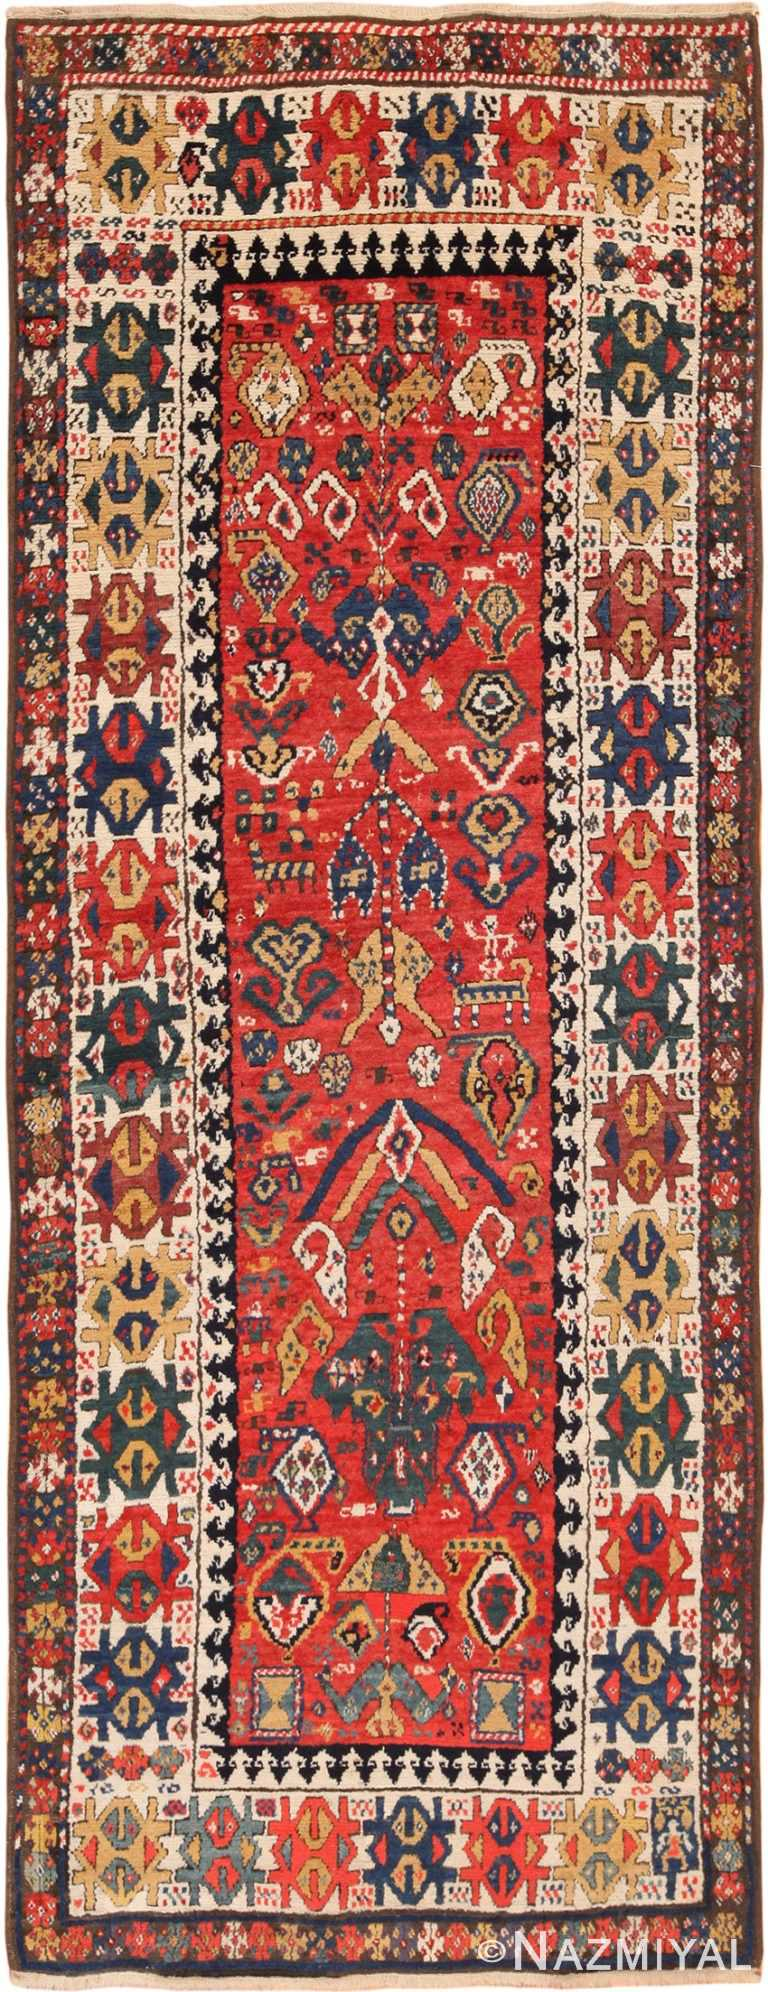 Full view Antique Caucasian Kazak Runner Rug #70122 Nazmiyal Antique Rugs in NYC